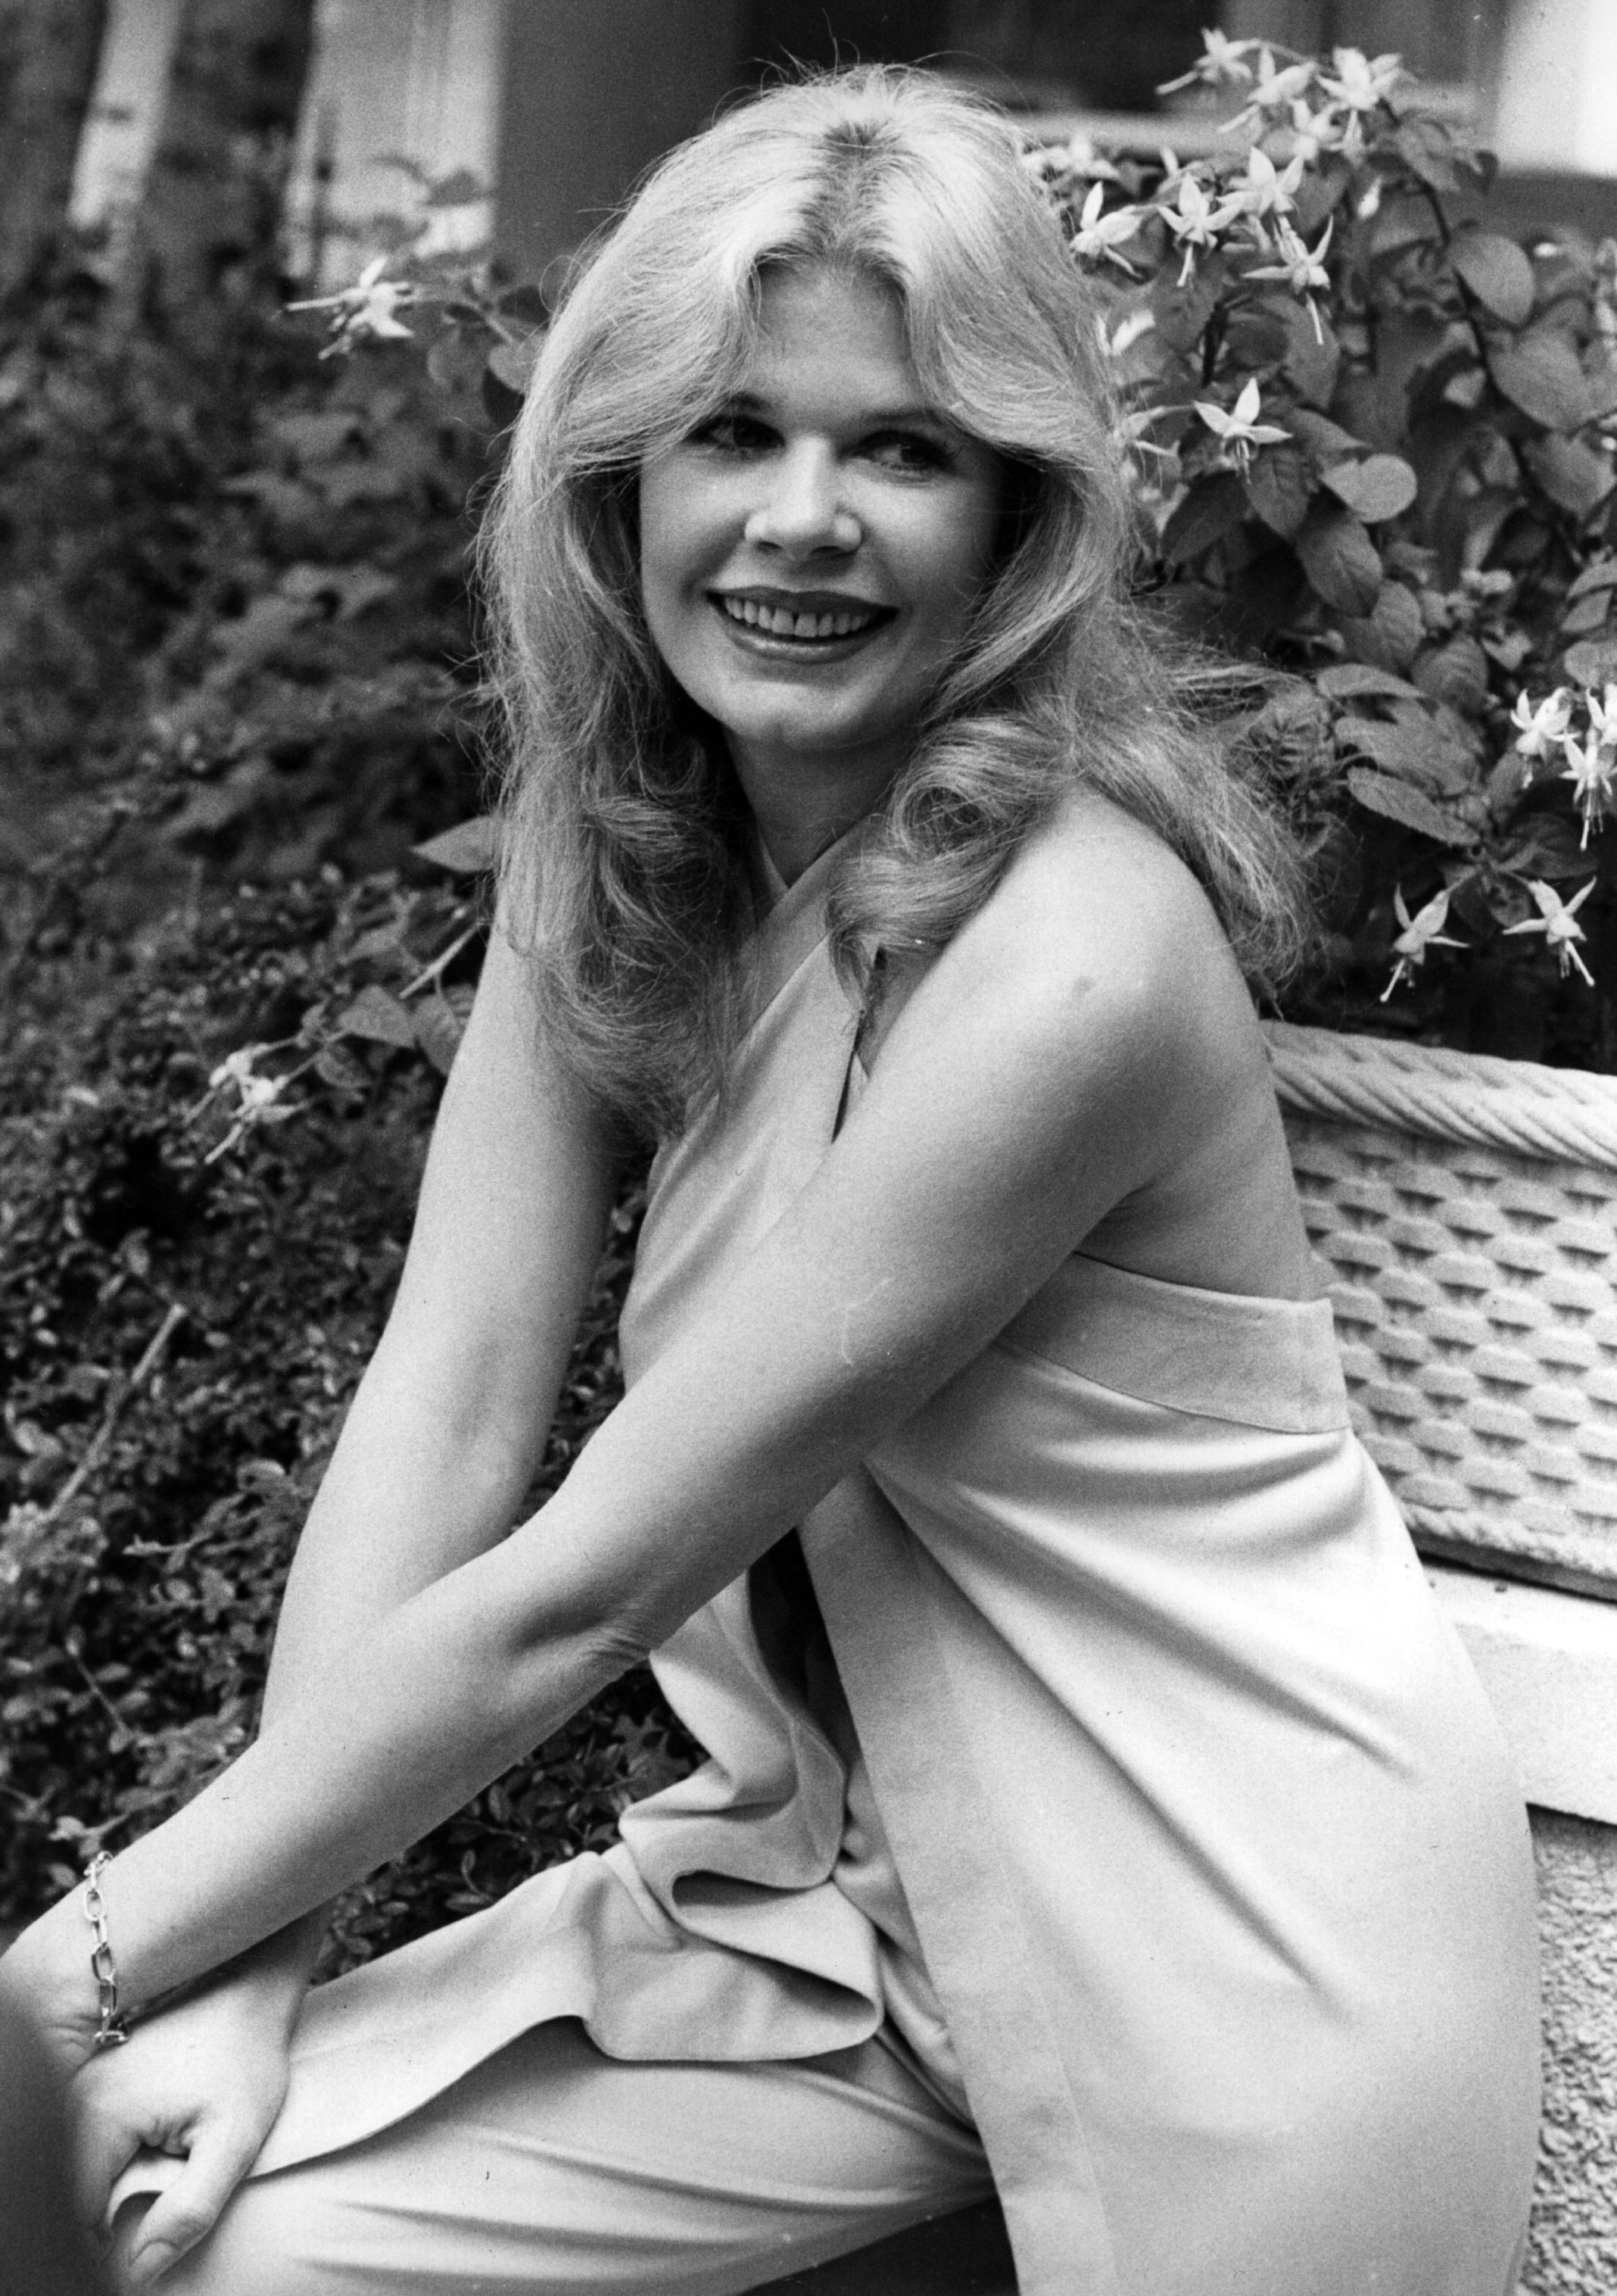 Loretta Swit, the actress who plays 'Hot Lips' in BBC 2's 'MASH' series, seen on holiday in England. | Getty Images